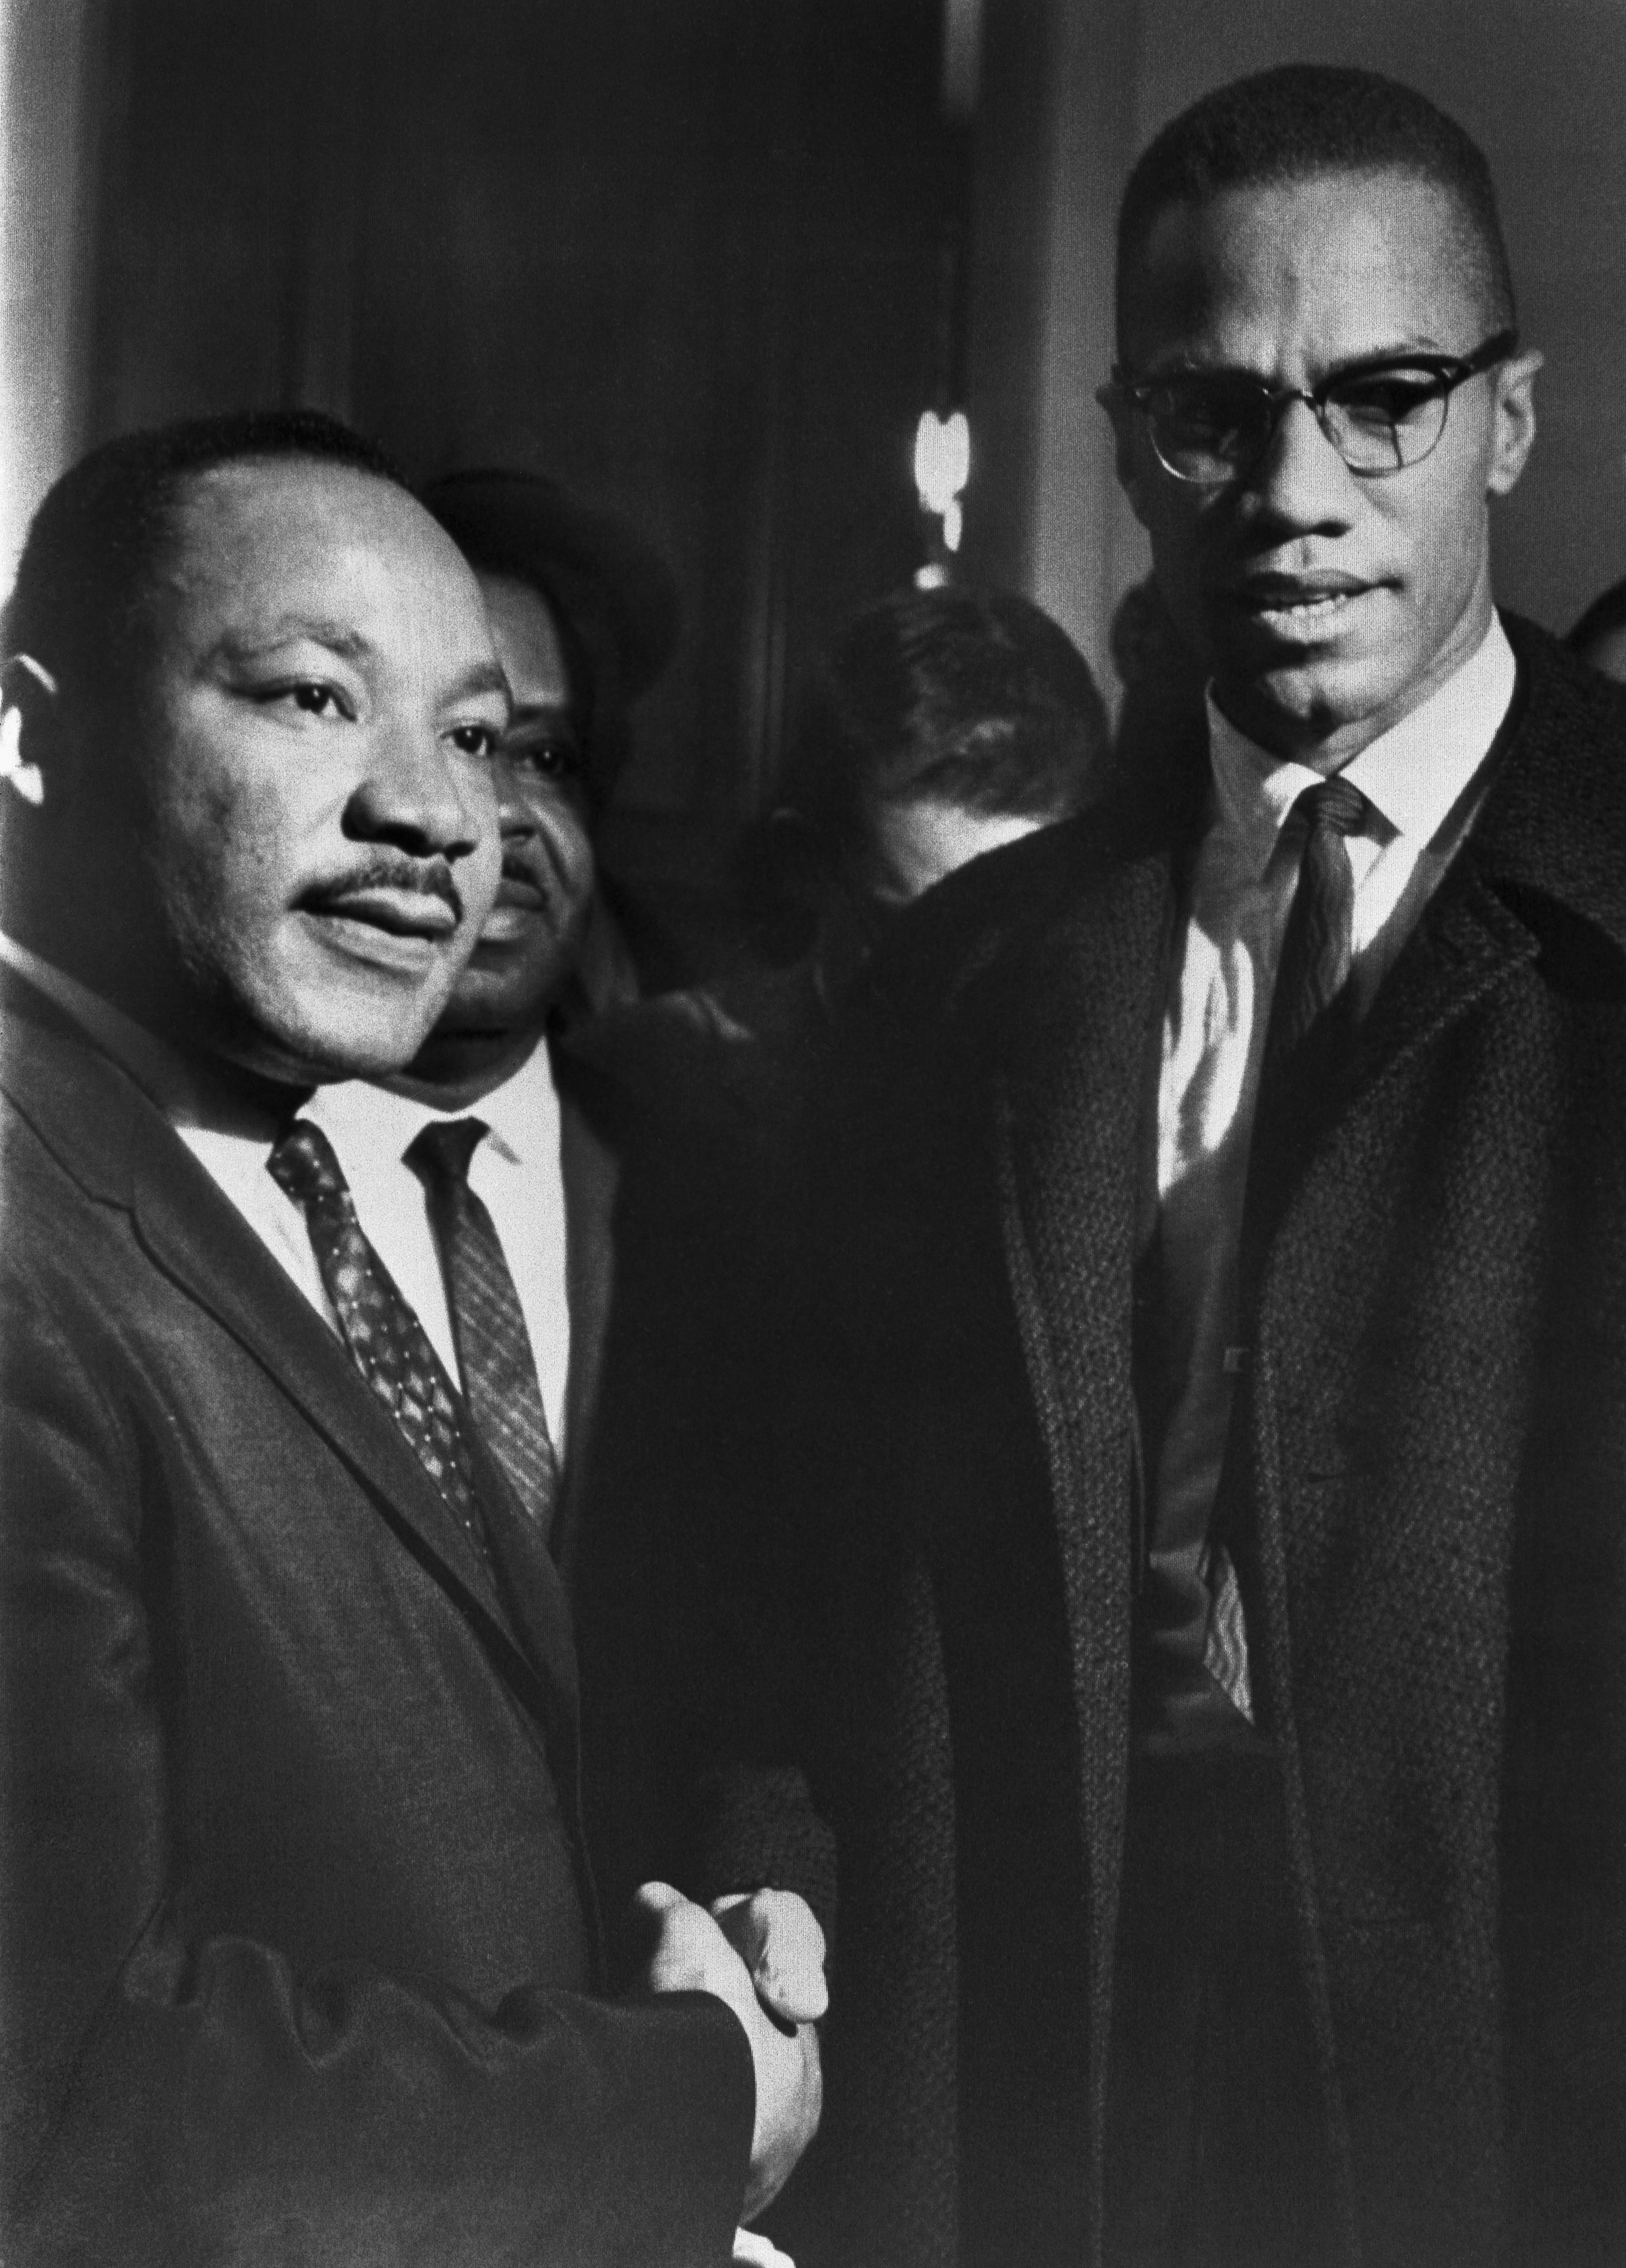 The brief, and only, meeting between Malcolm X (1925-1965) and Martin Luther King (1929-1968), in the halls of the US Capitol, attending a Senate hearing on the Civil Rights Act, Washington DC, 26th March 1964. | Source: Getty Images